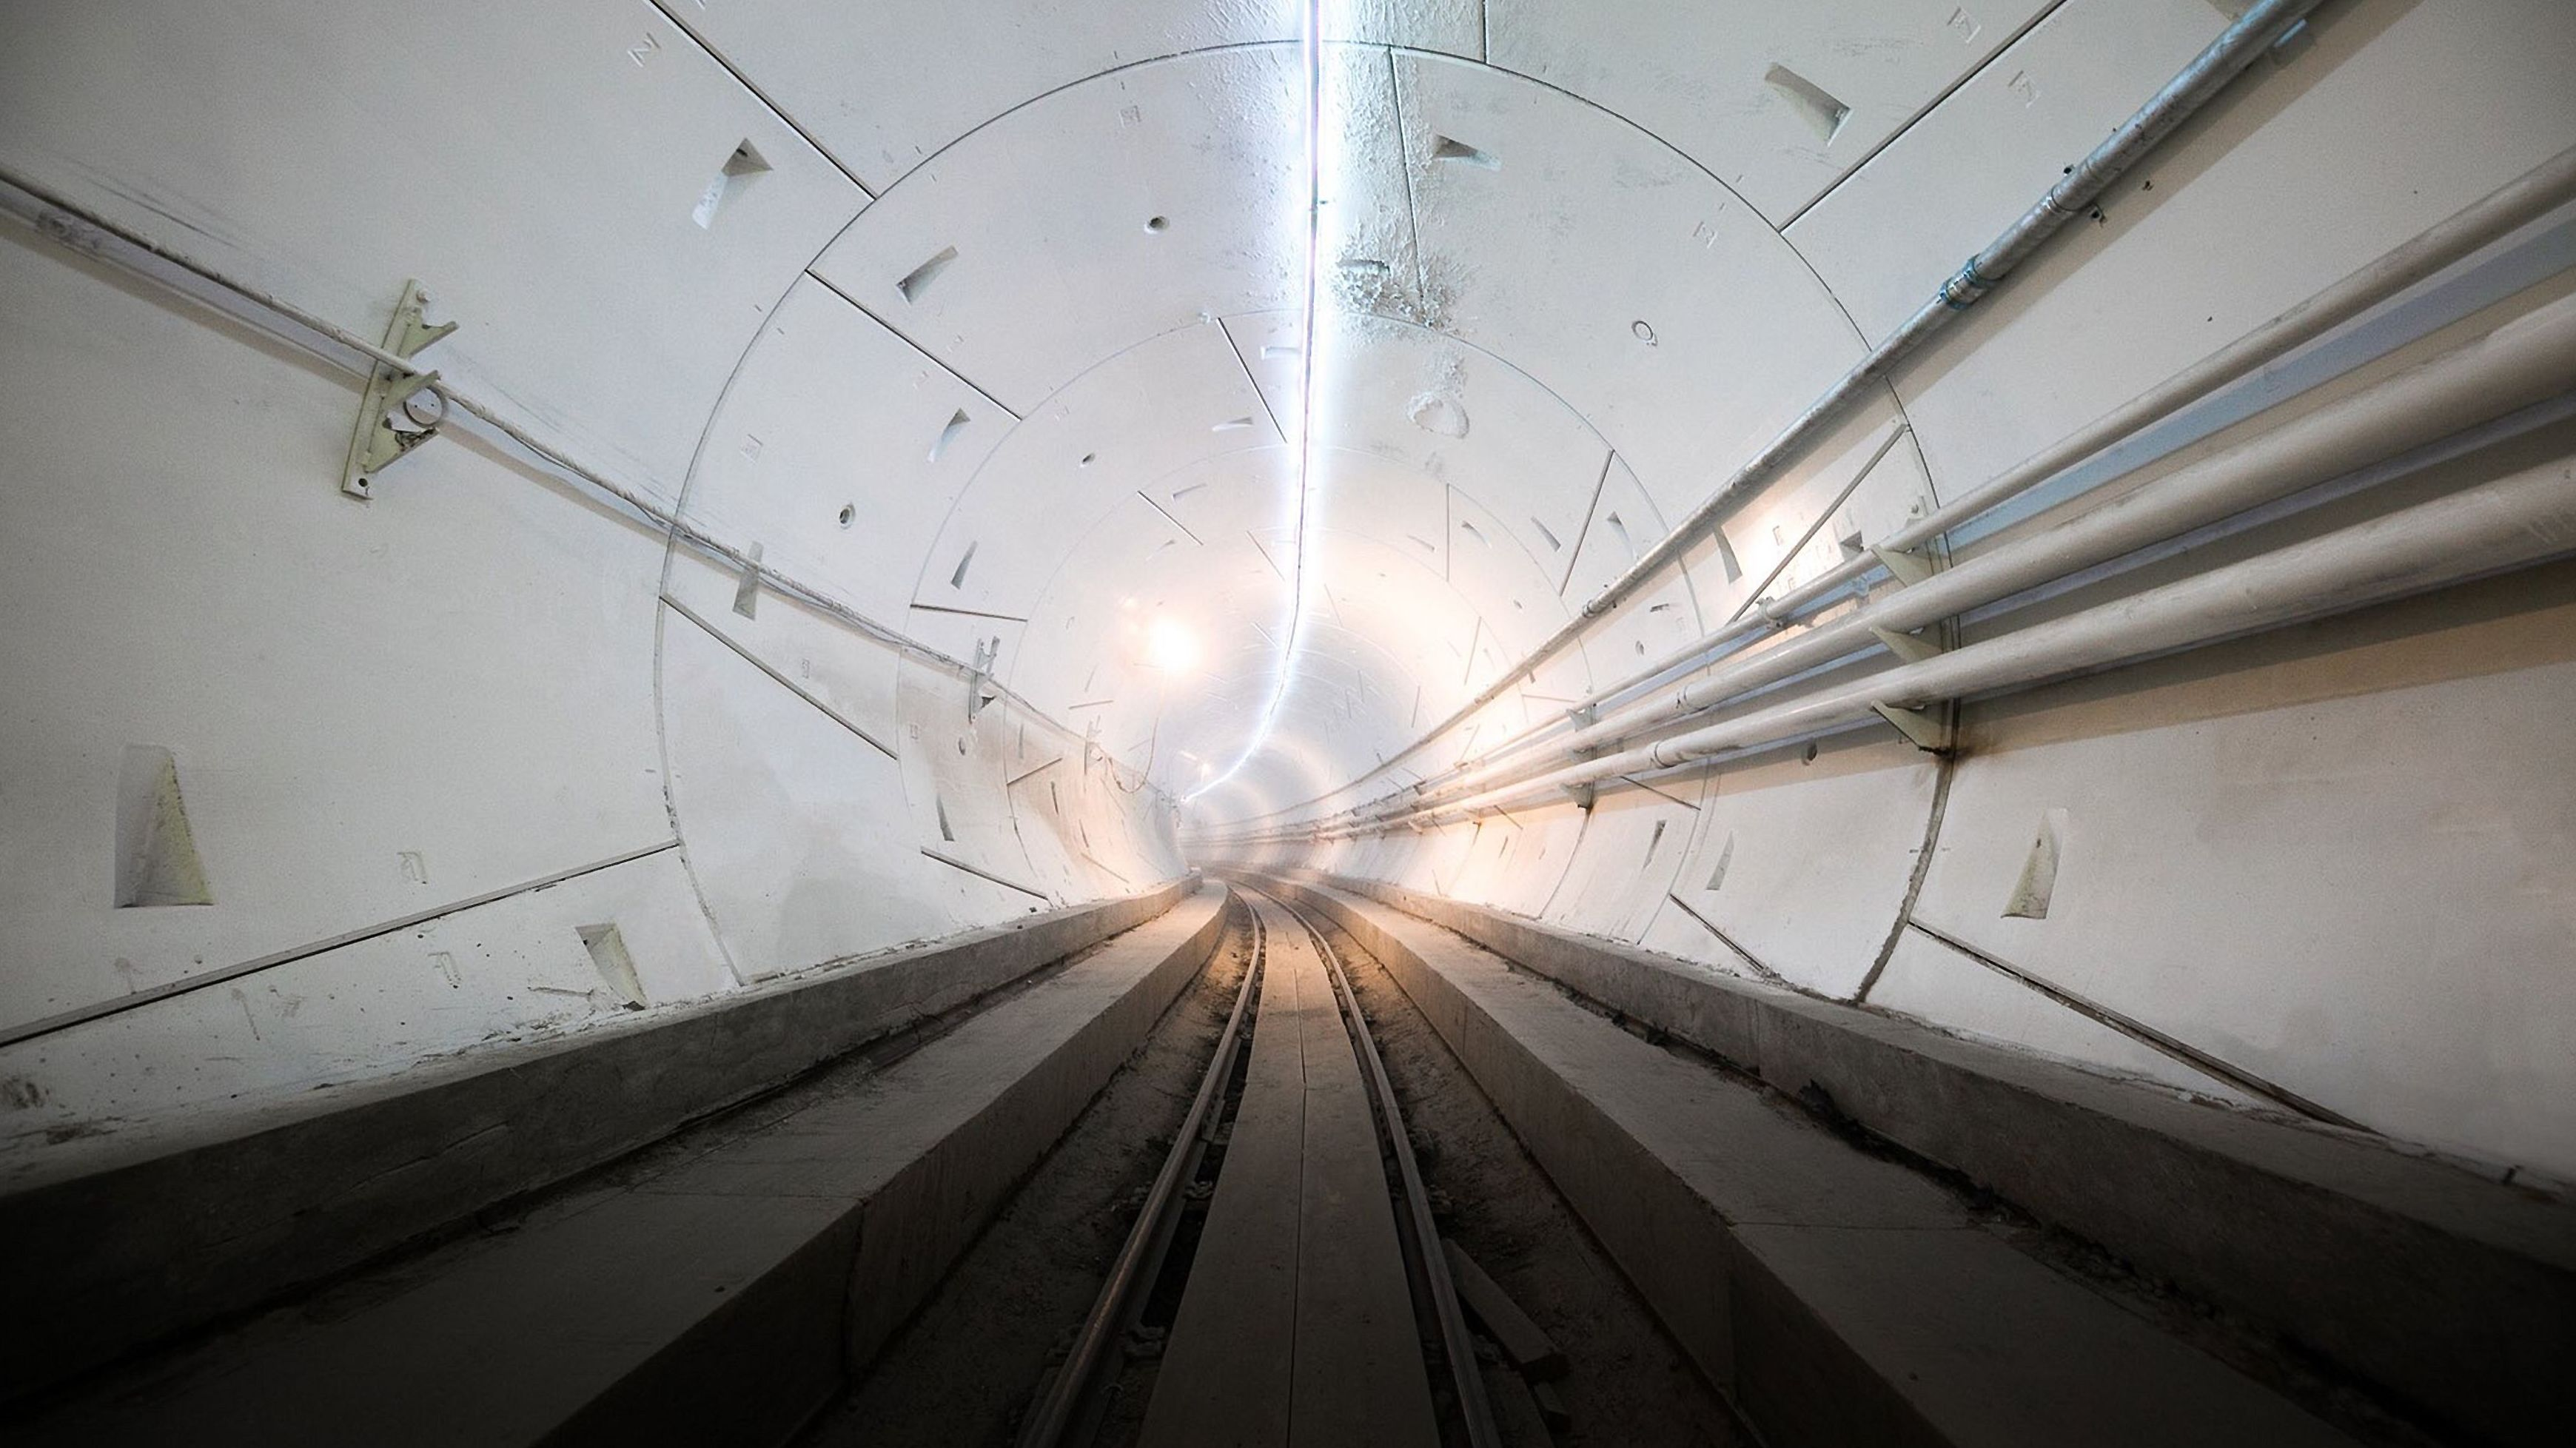 Hyperloop-Testtunnel in Kalifornien